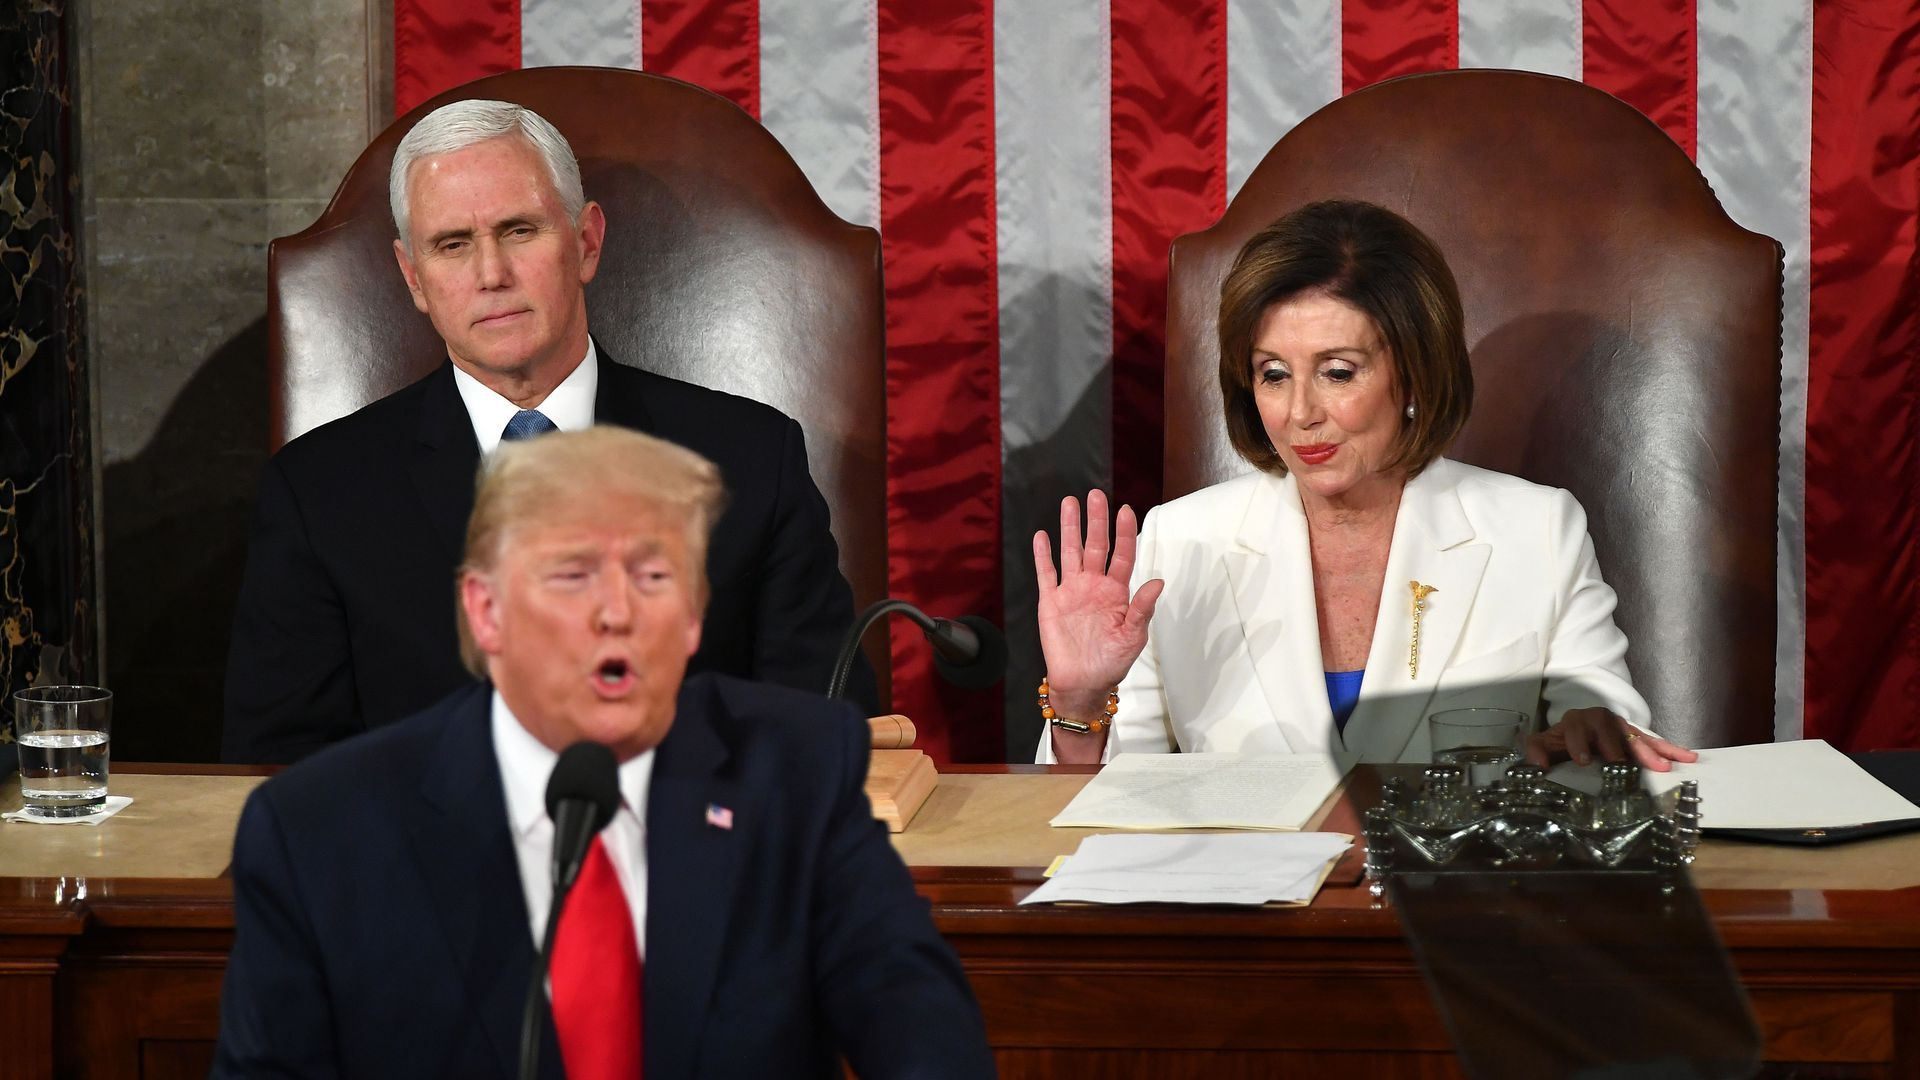 Trump State of the Union TV ratings tumble